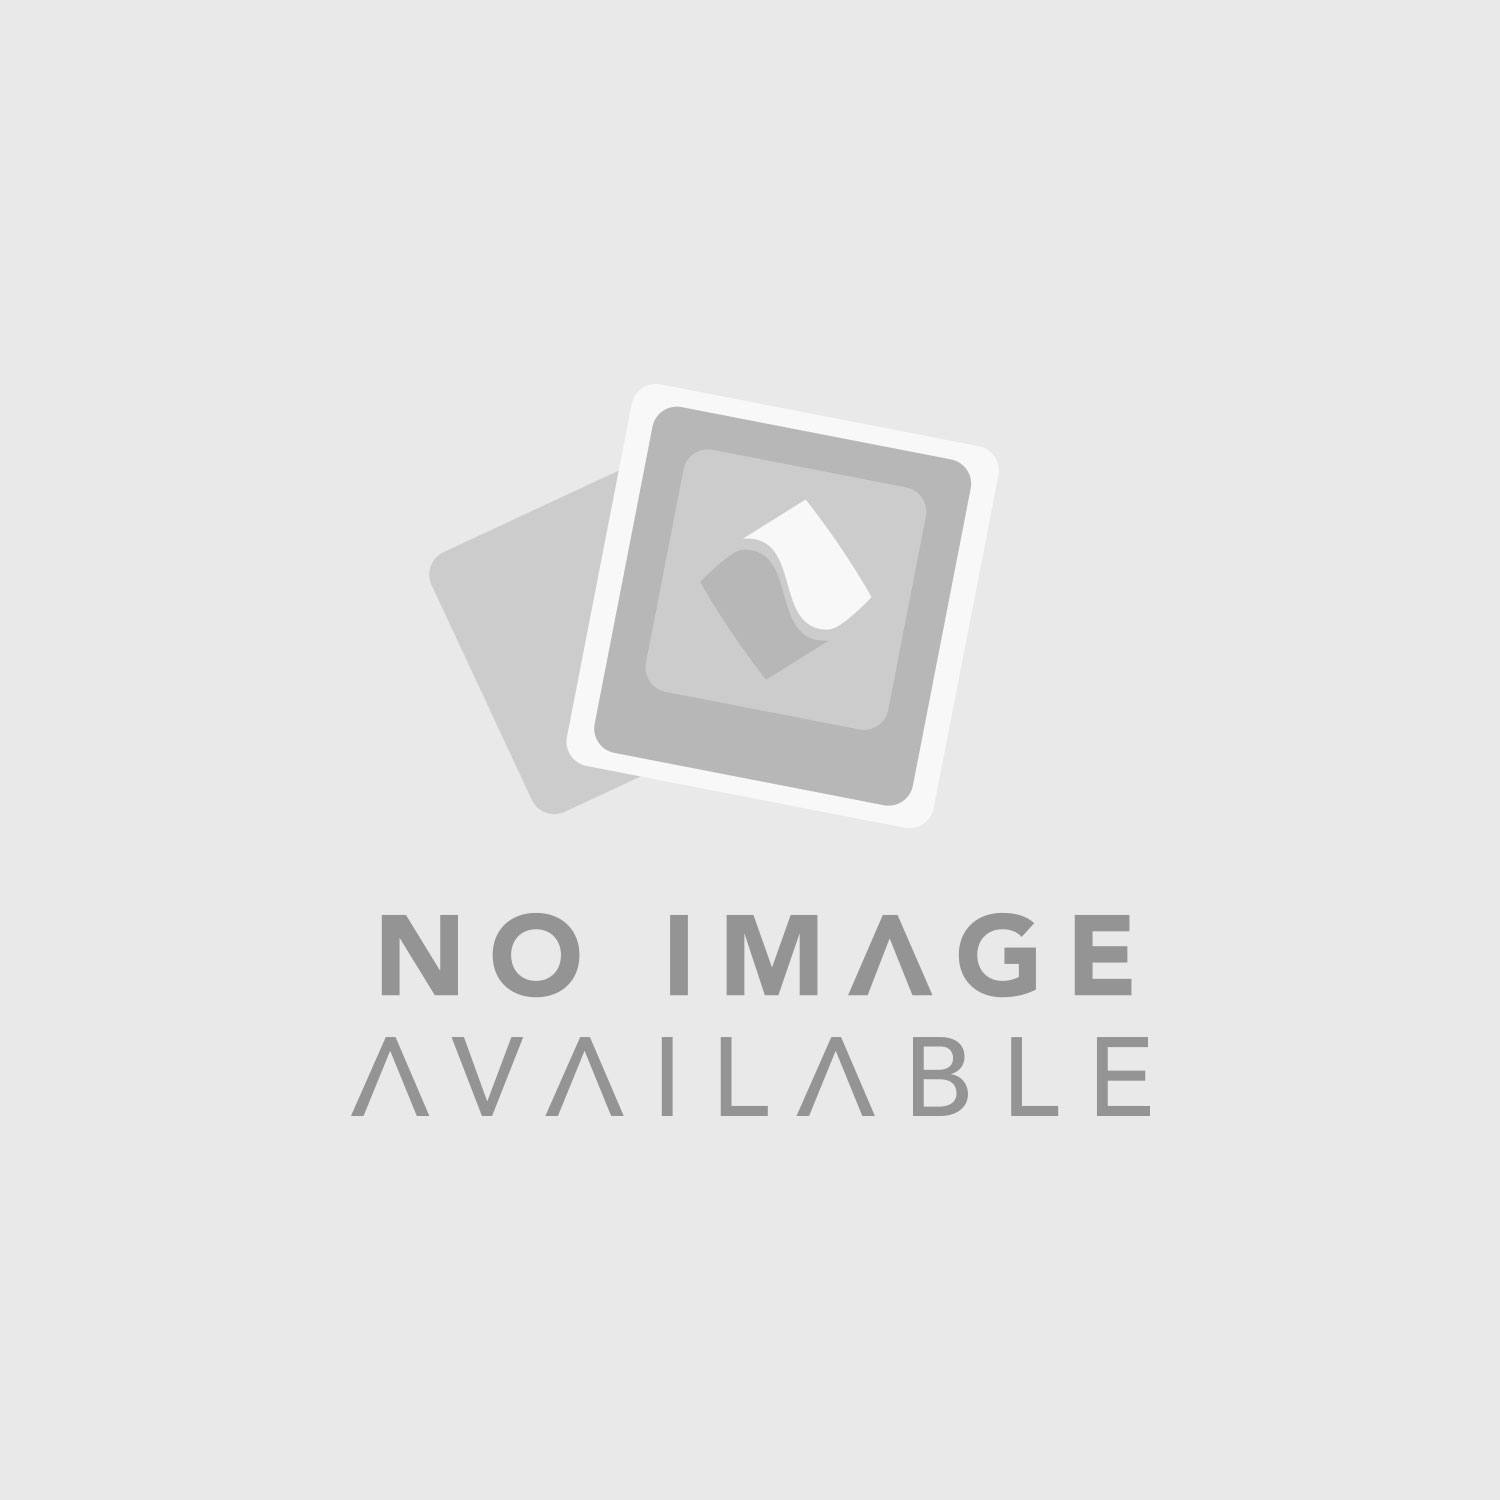 SKB 5FC-1610-5 Replacement Cubed Foam for 3i-1610-5-Series Cases